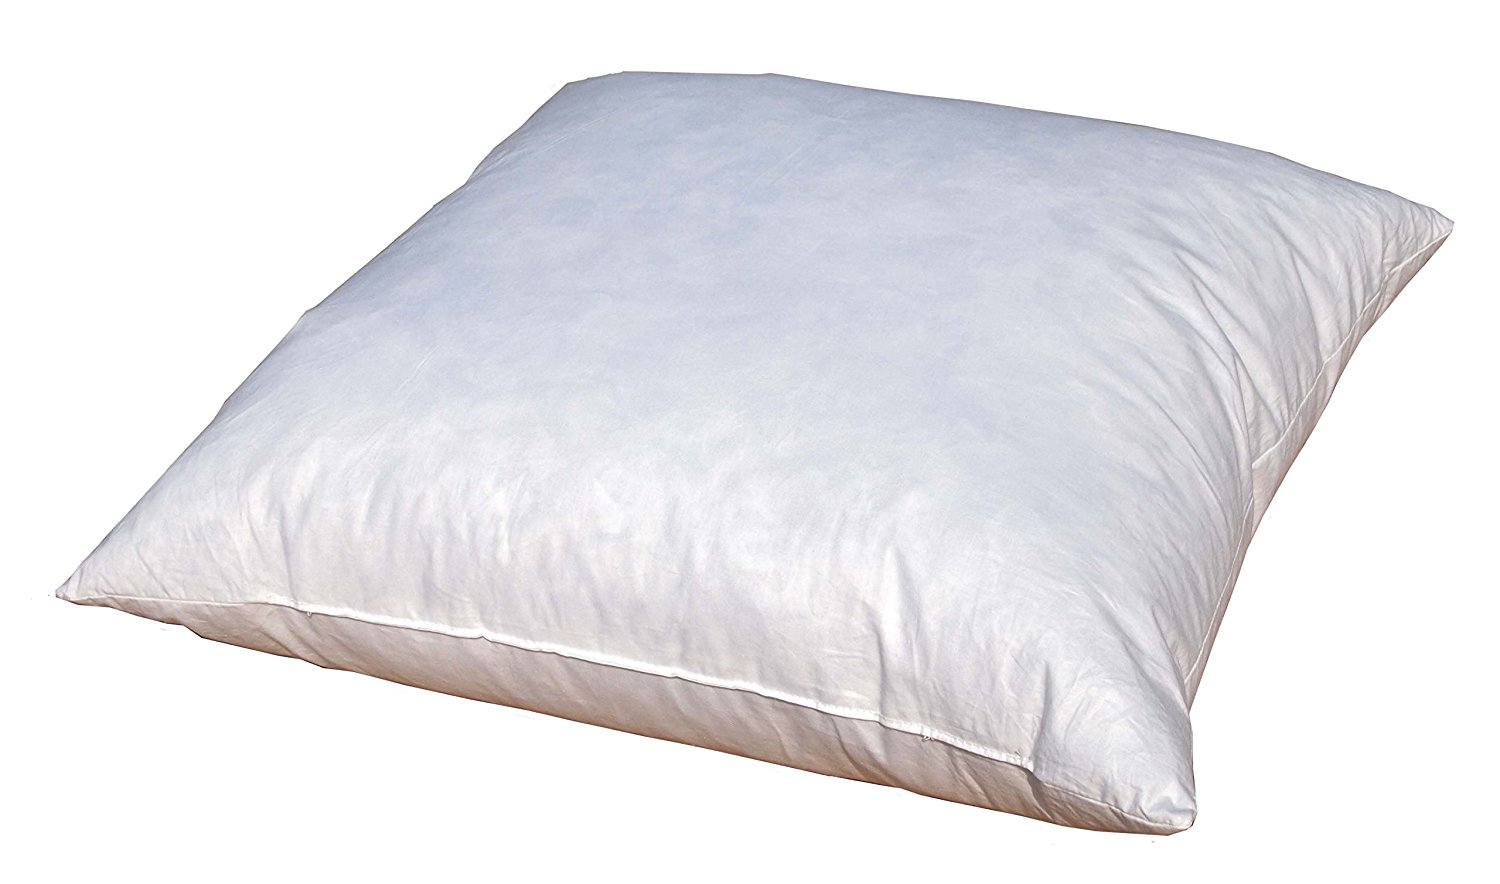 Old fashioned heavy feather pillows 5